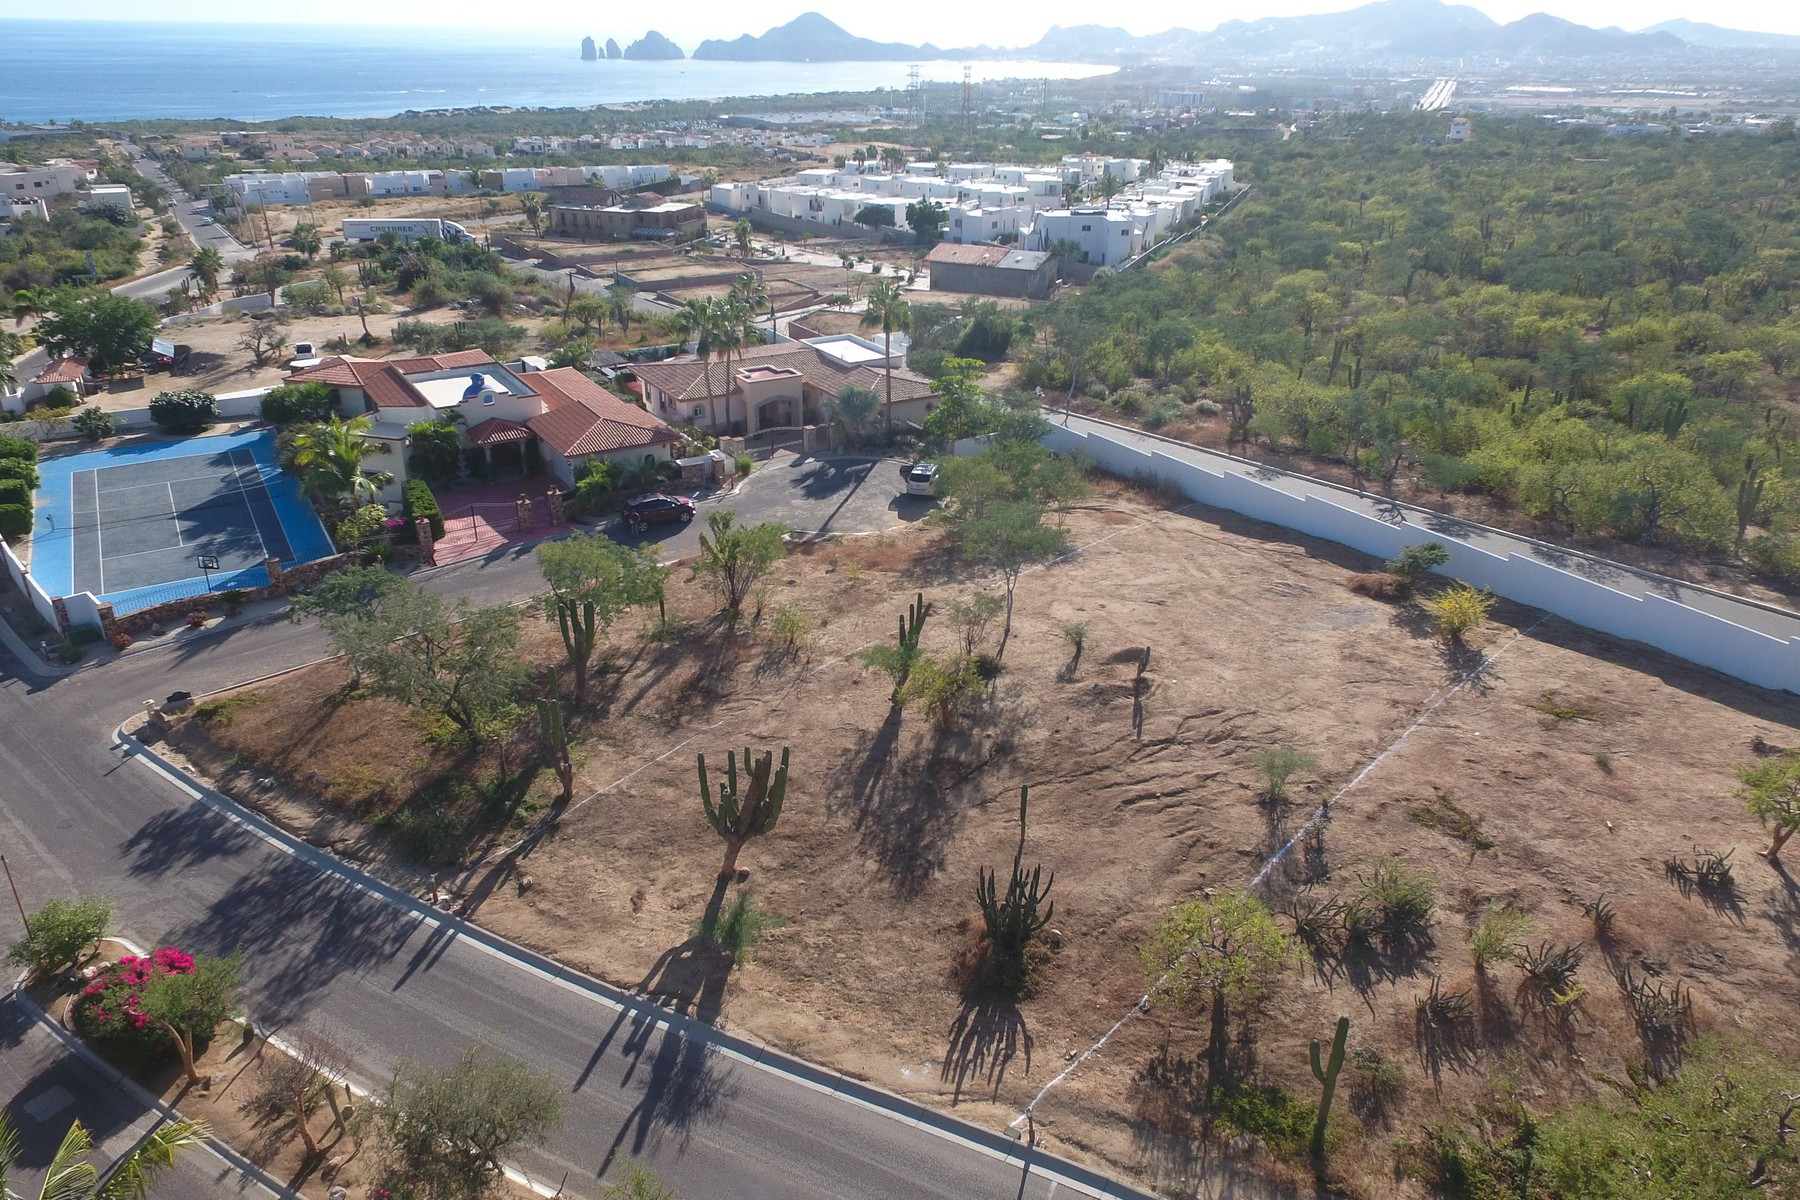 Land for Sale at Lote 6F Rancho Paraiso Lote 6F Paseo San Jorge Cabo San Lucas, 23454 Mexico